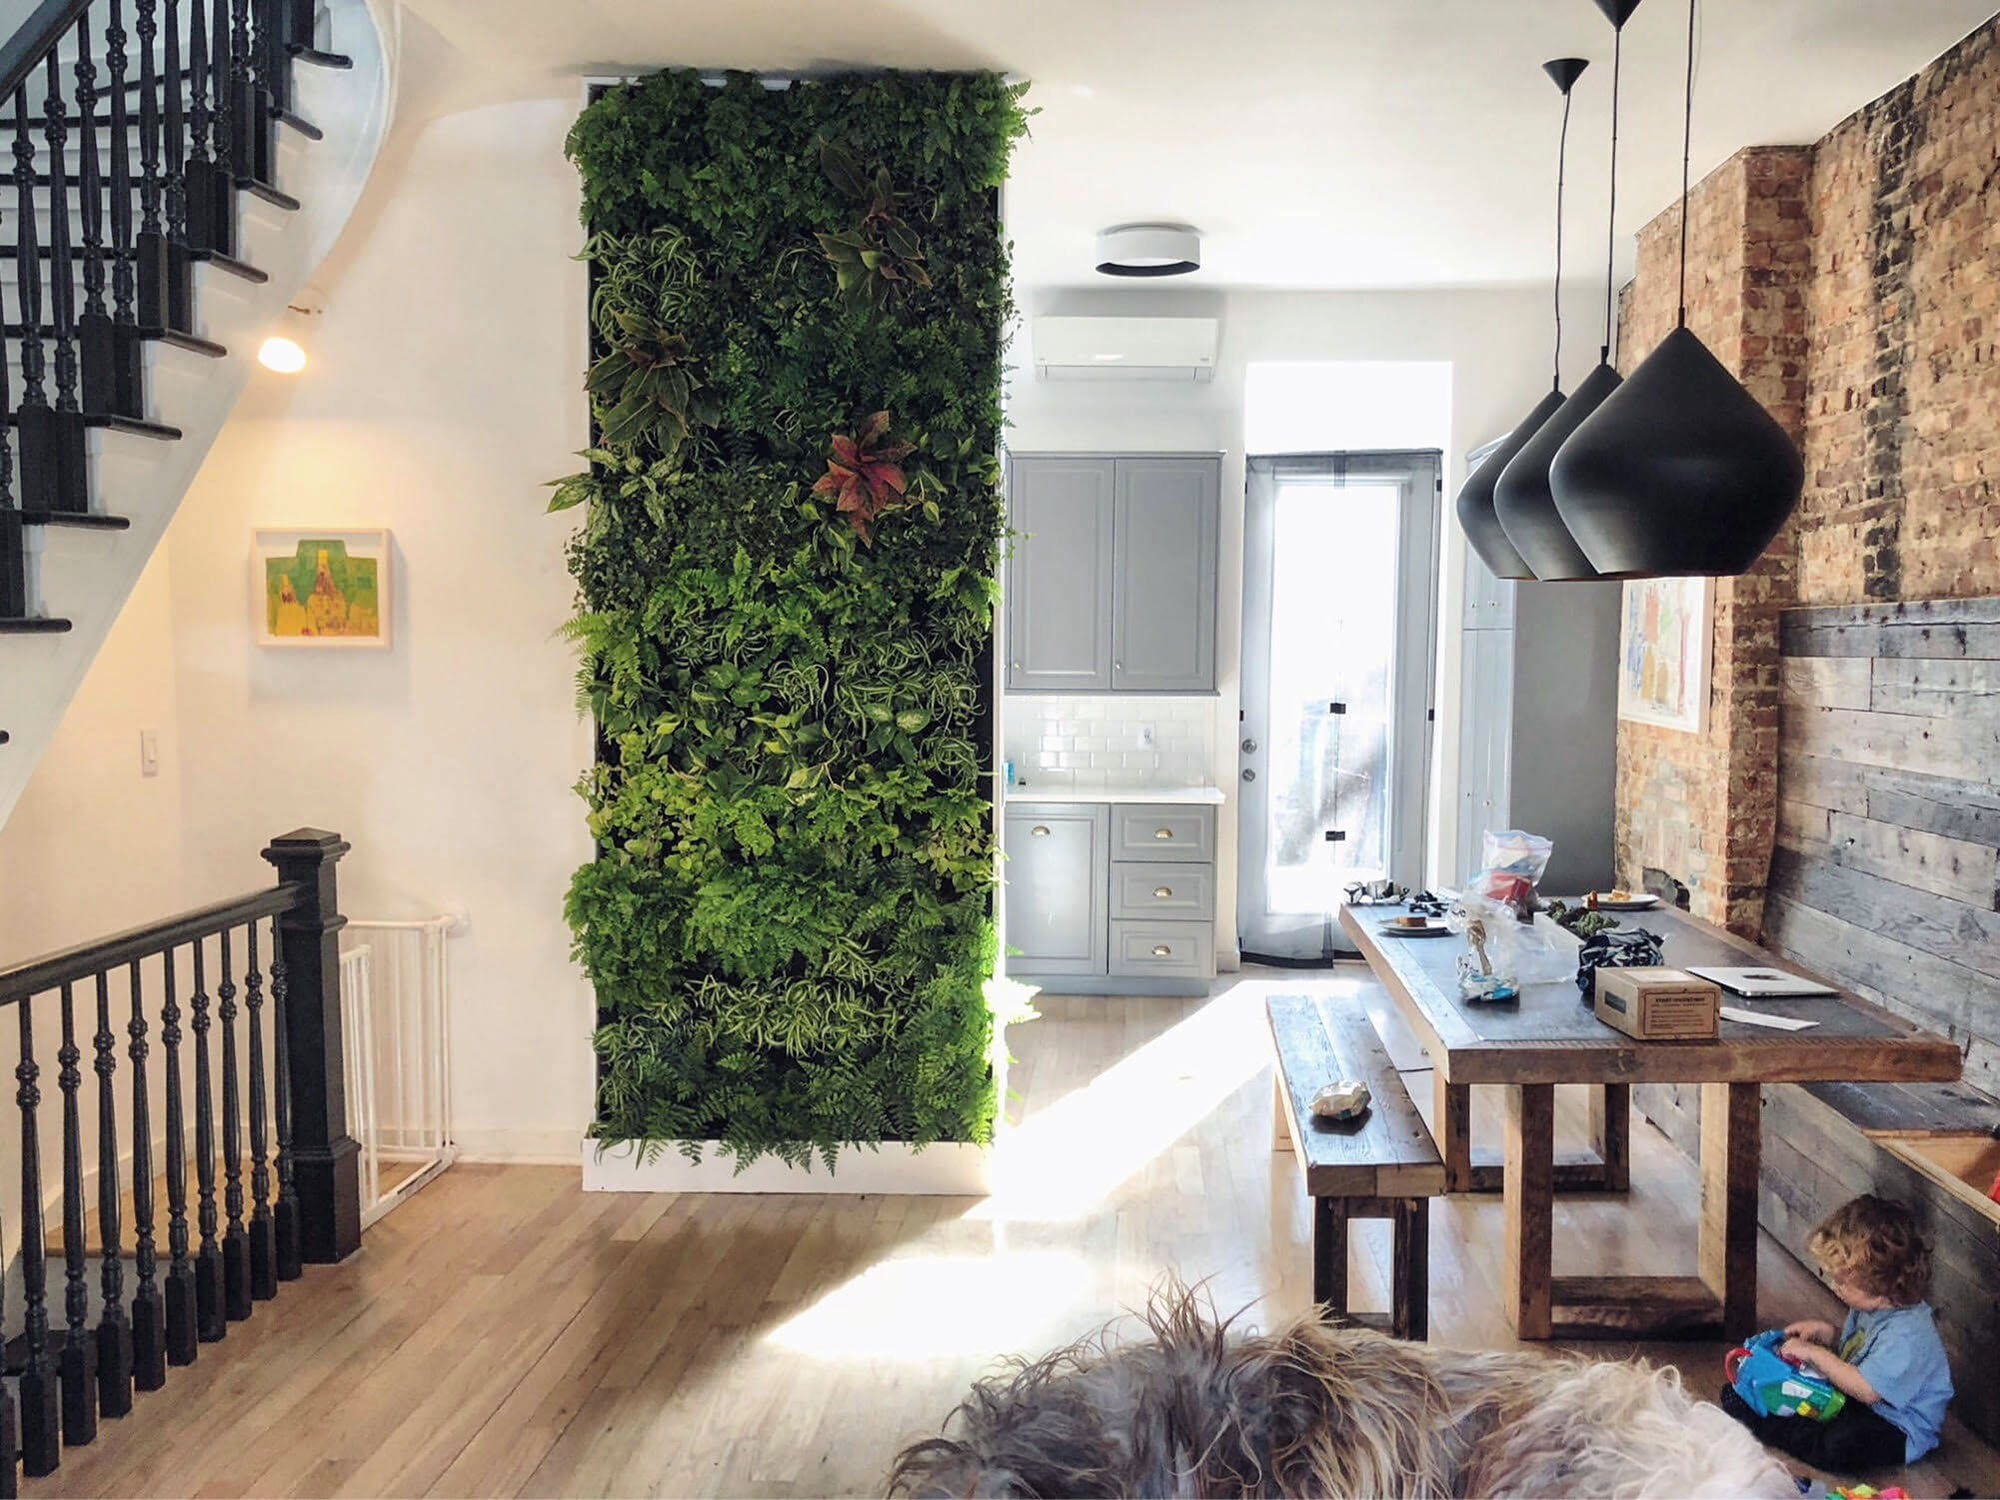 Living green wall display inside the home.